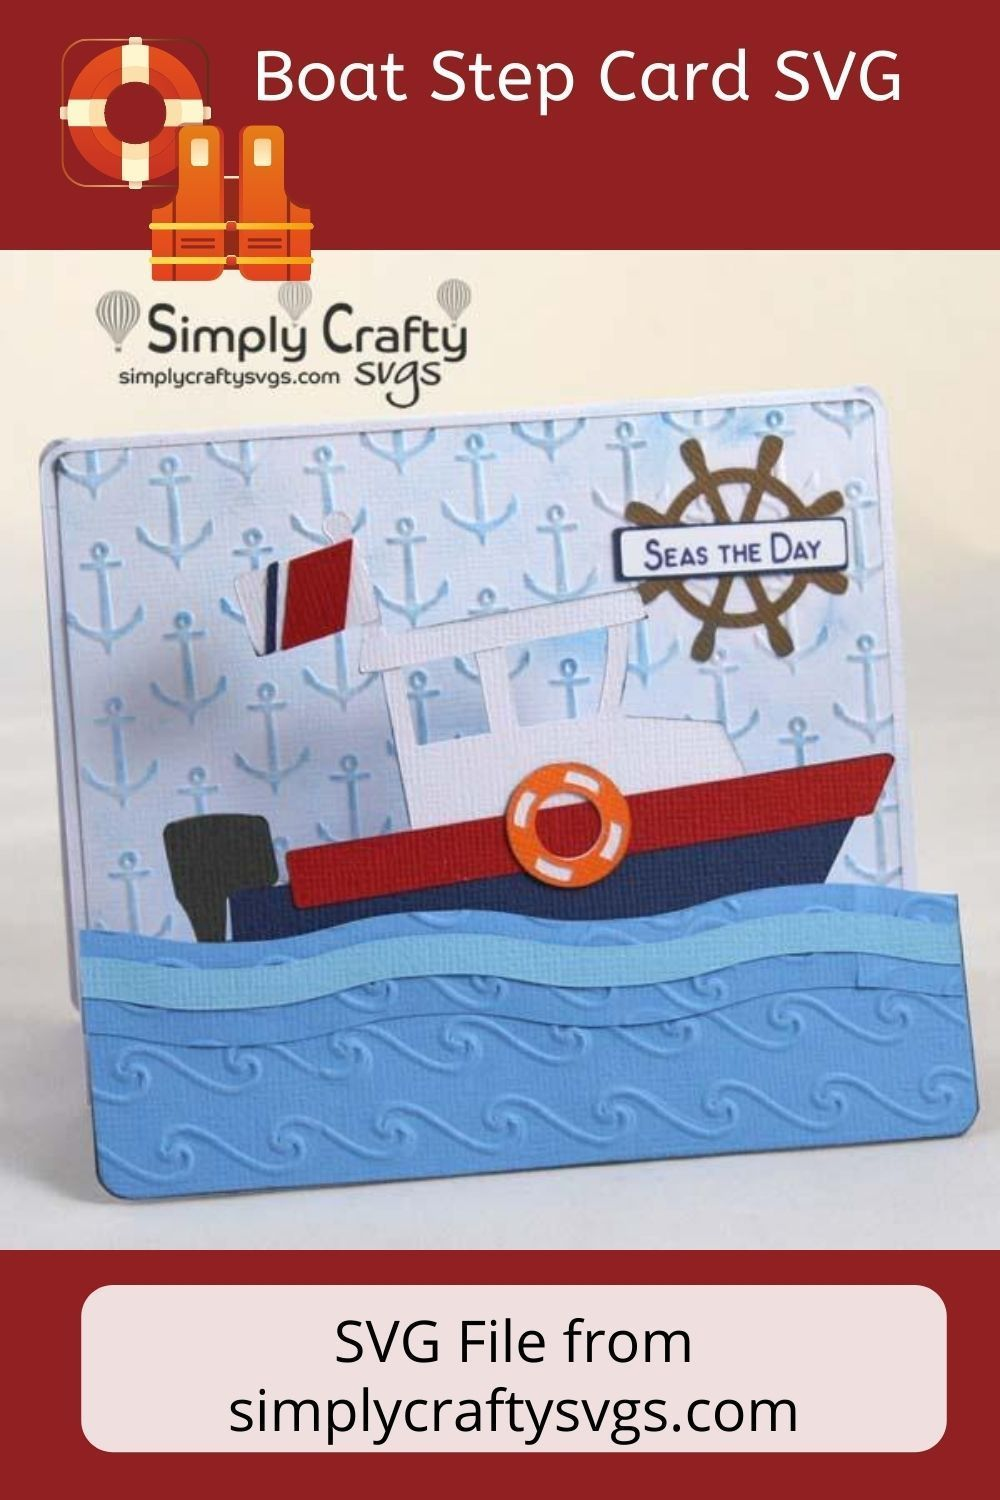 Boat step card svg file simply crafty svgs in 2020